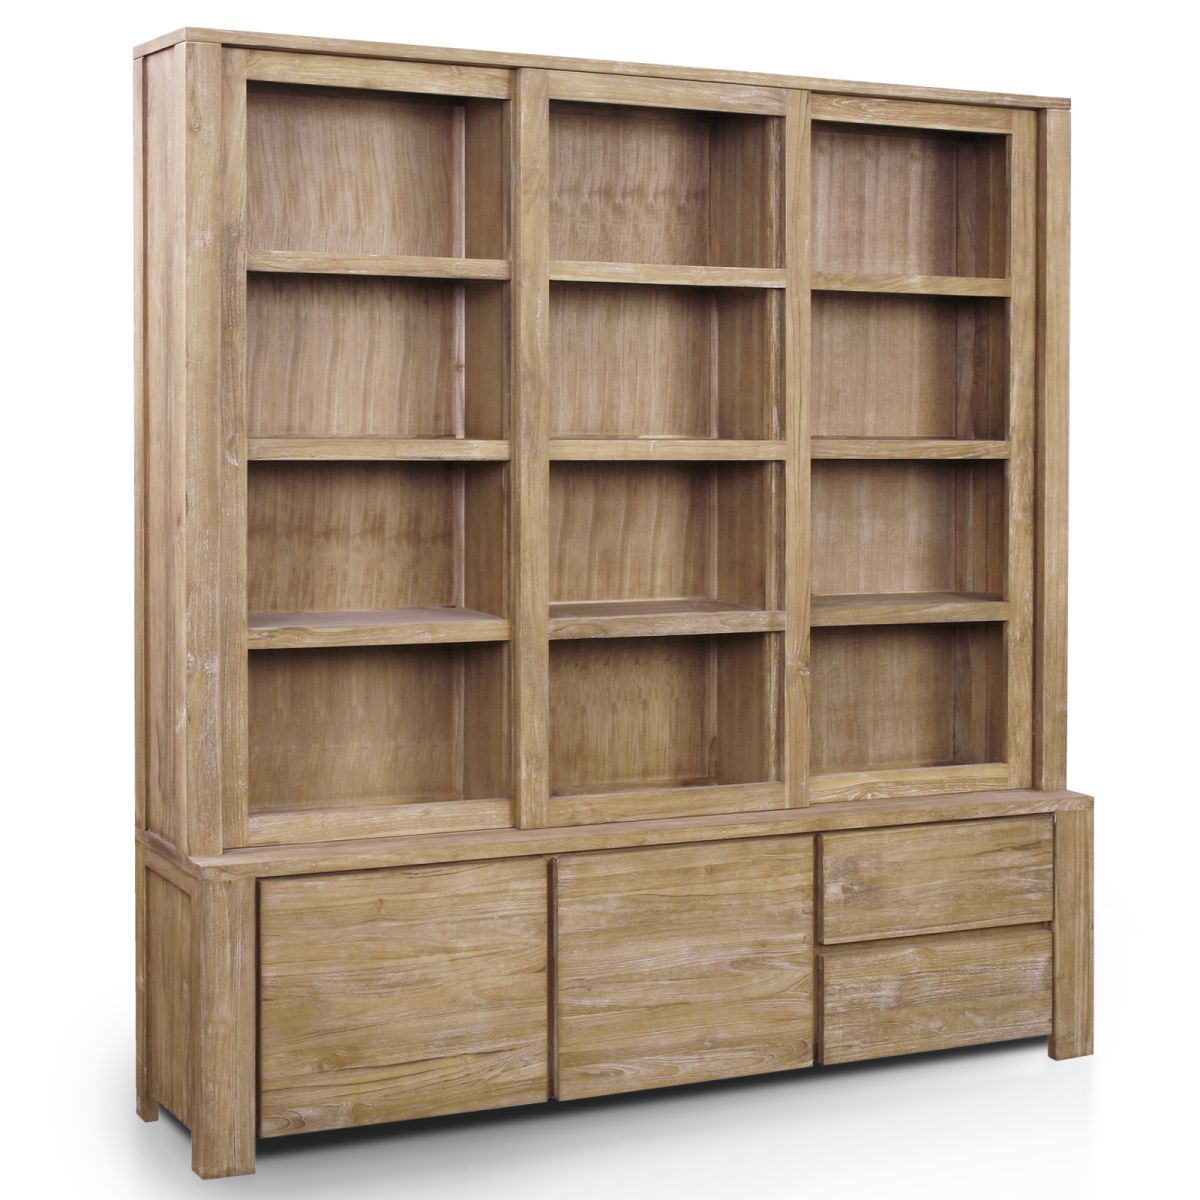 Image of: Traditional Bookcases with Doors